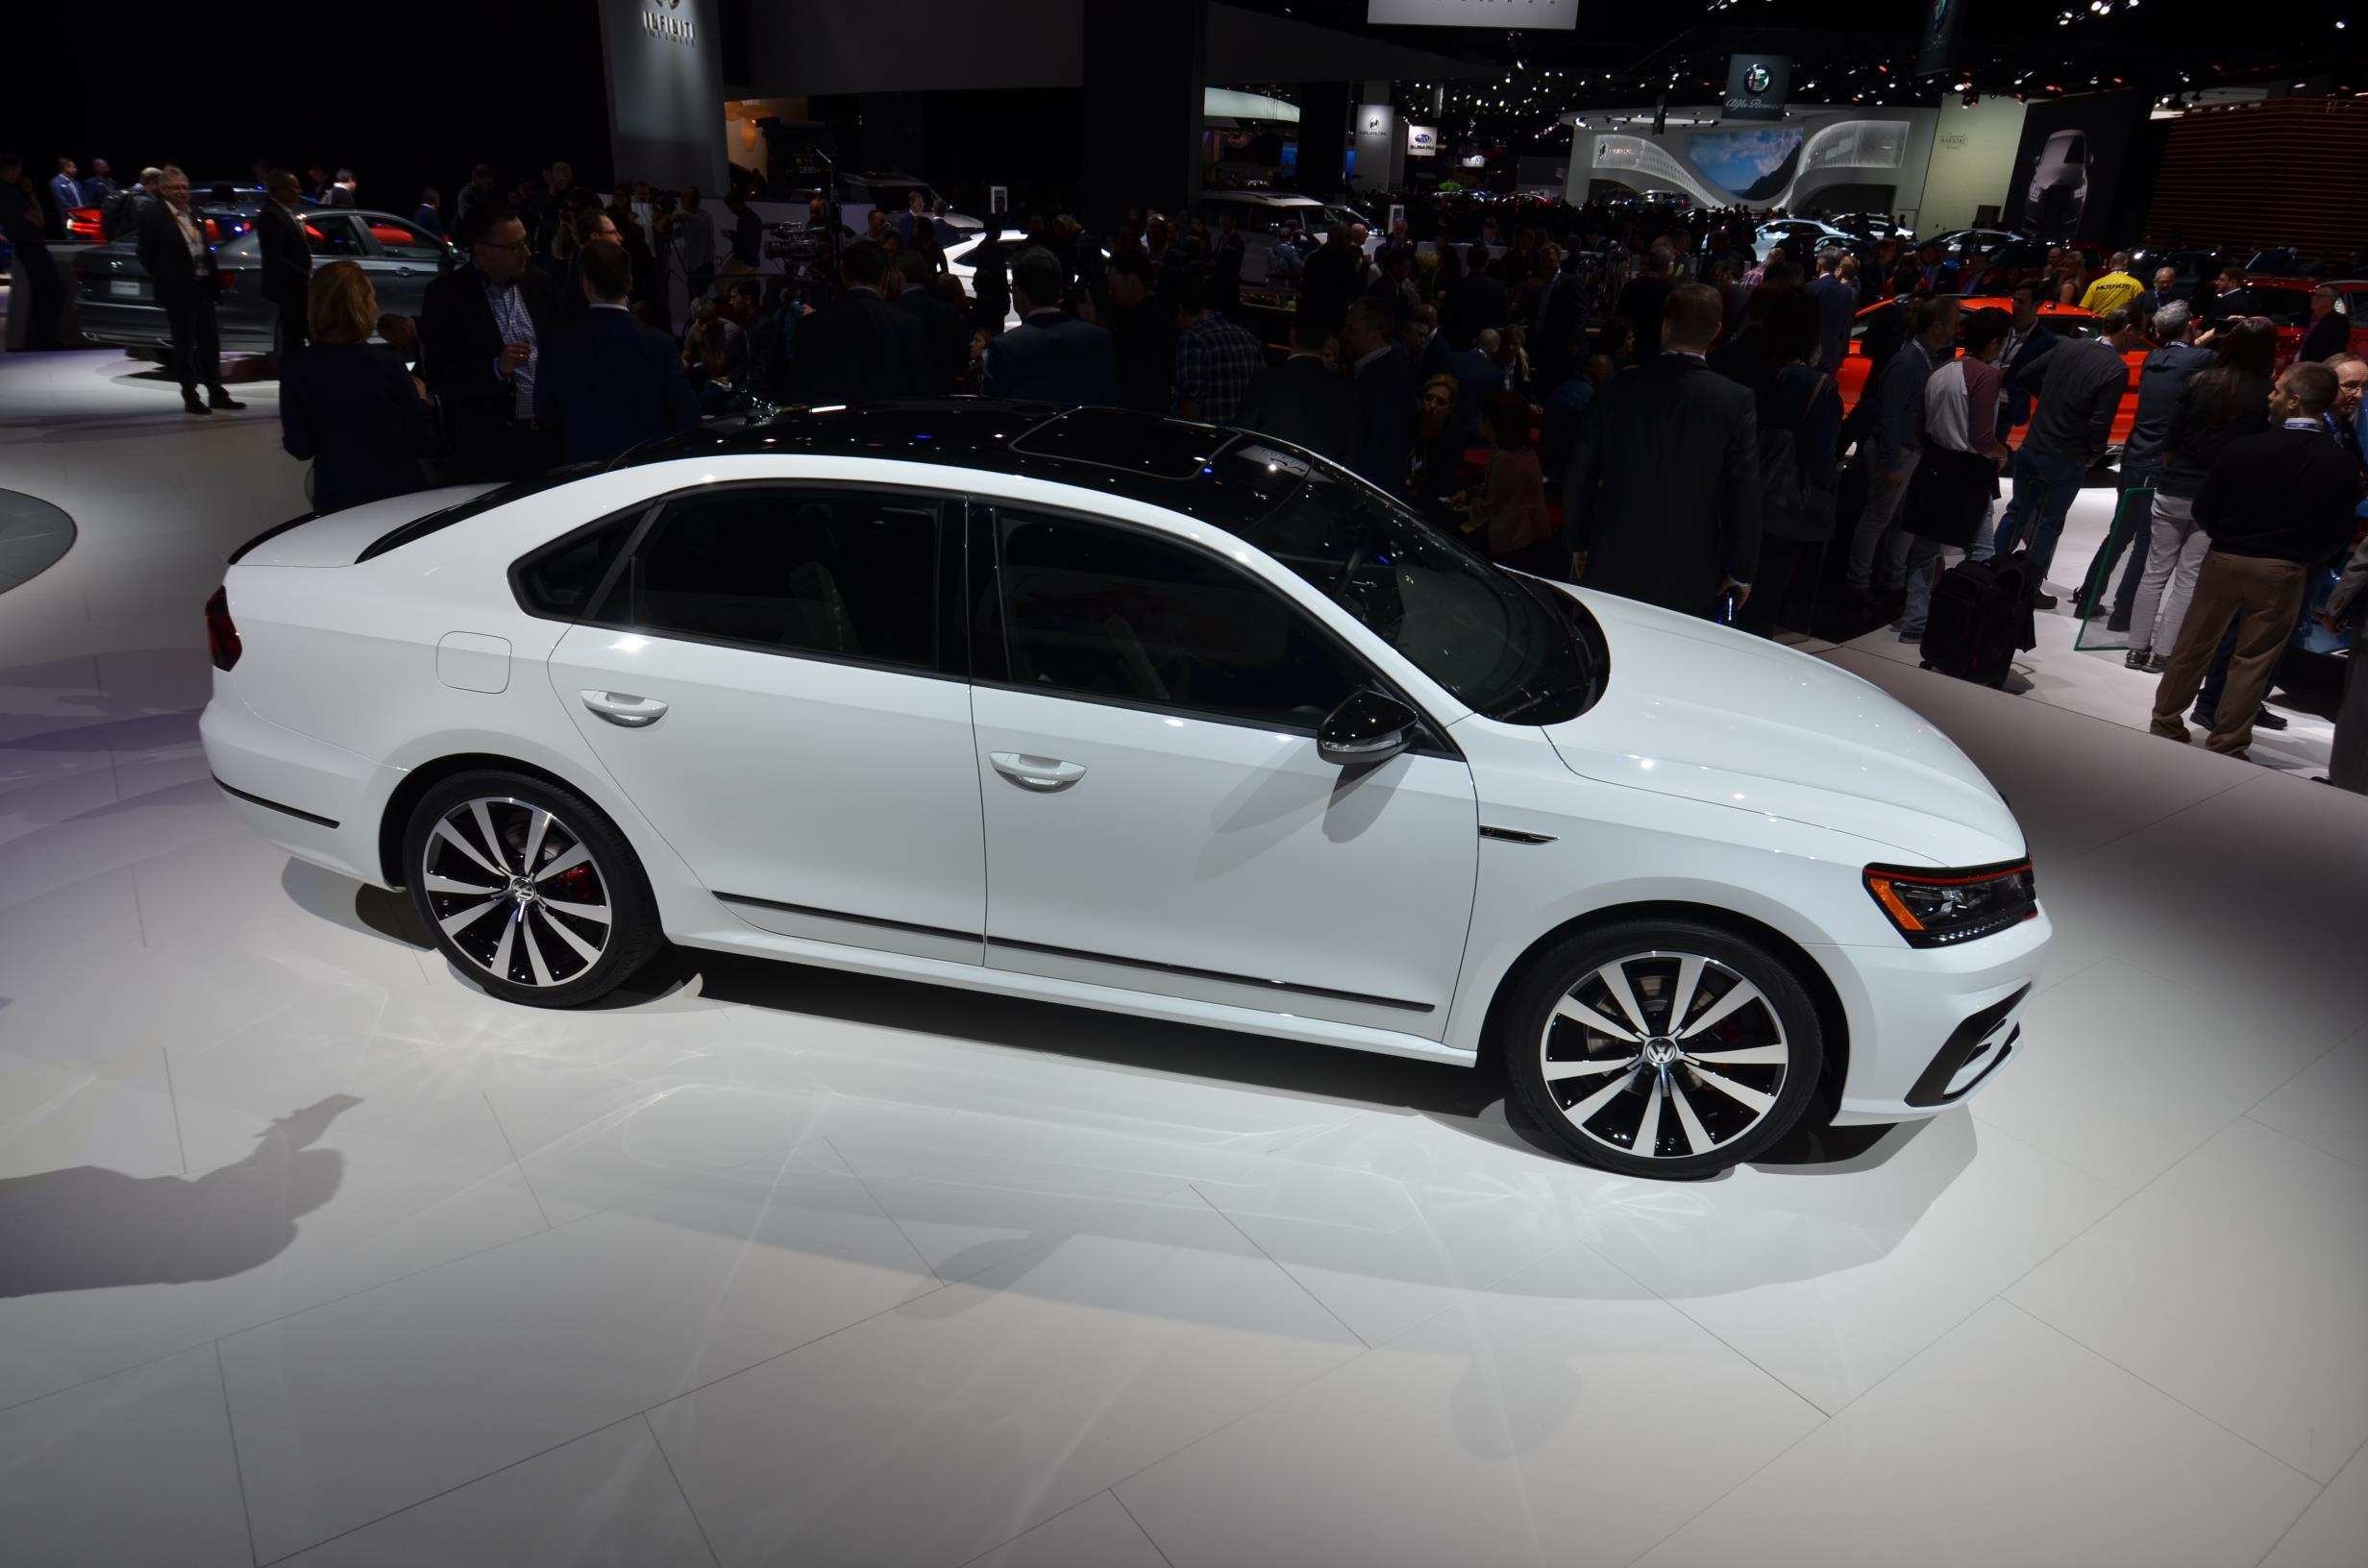 72 Great 2019 Vw Passat Gt Configurations by 2019 Vw Passat Gt